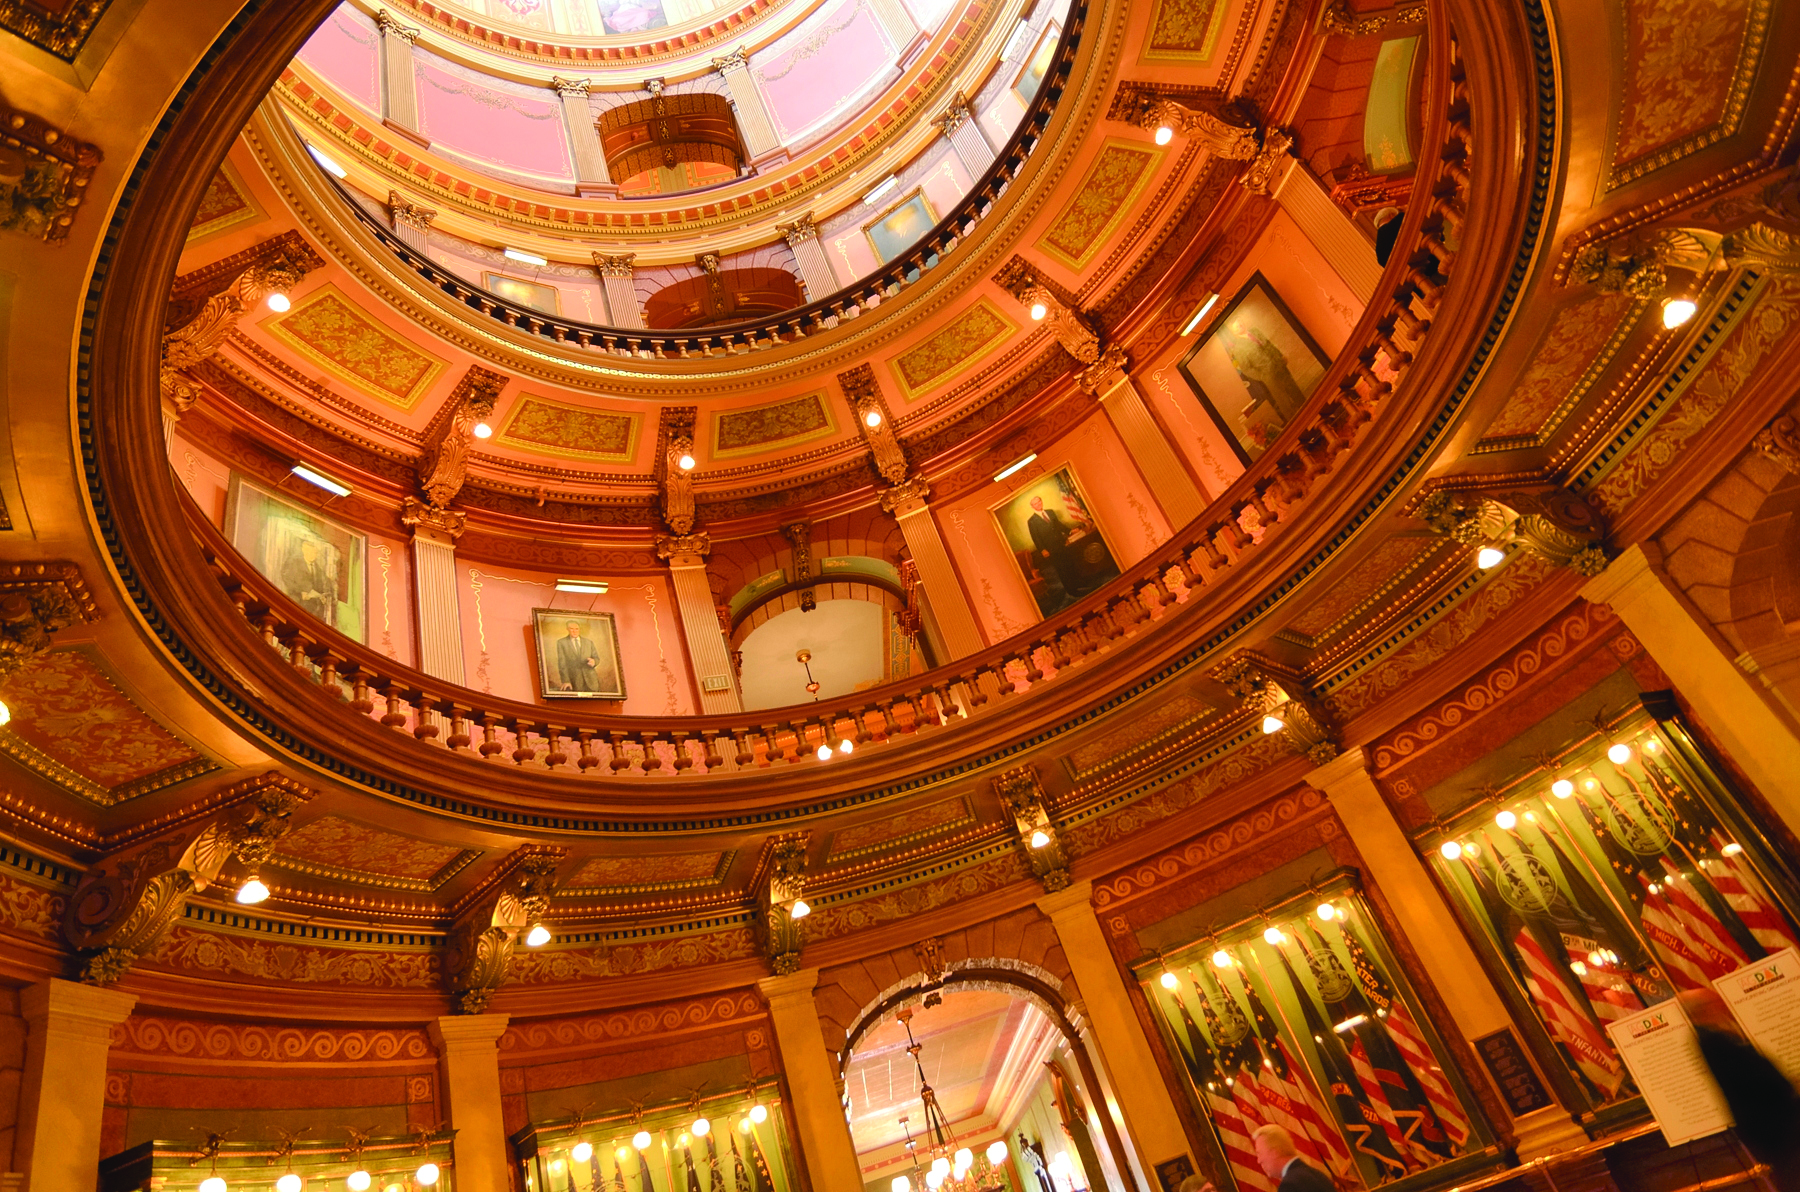 Lansing, Michigan, USA - March 14, 2012: Low angle view of people inside of the public Capitol building in Lansing, the capital city of the state of Michigan.